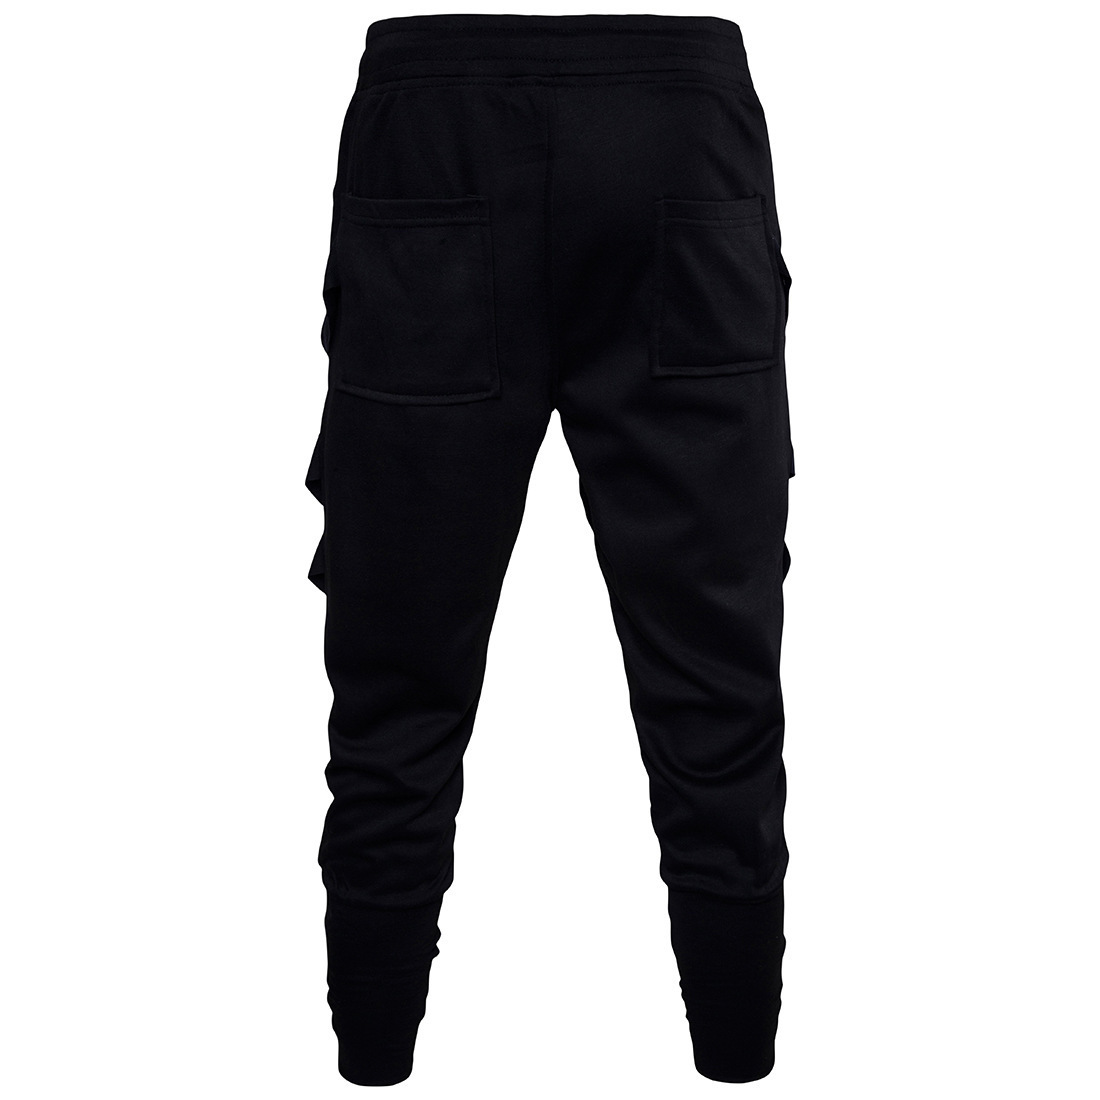 2017 New Style Trend Men Cool Nightclub Performance Harem Pants Low-crotch Flare Cut Casual Gymnastic Pants